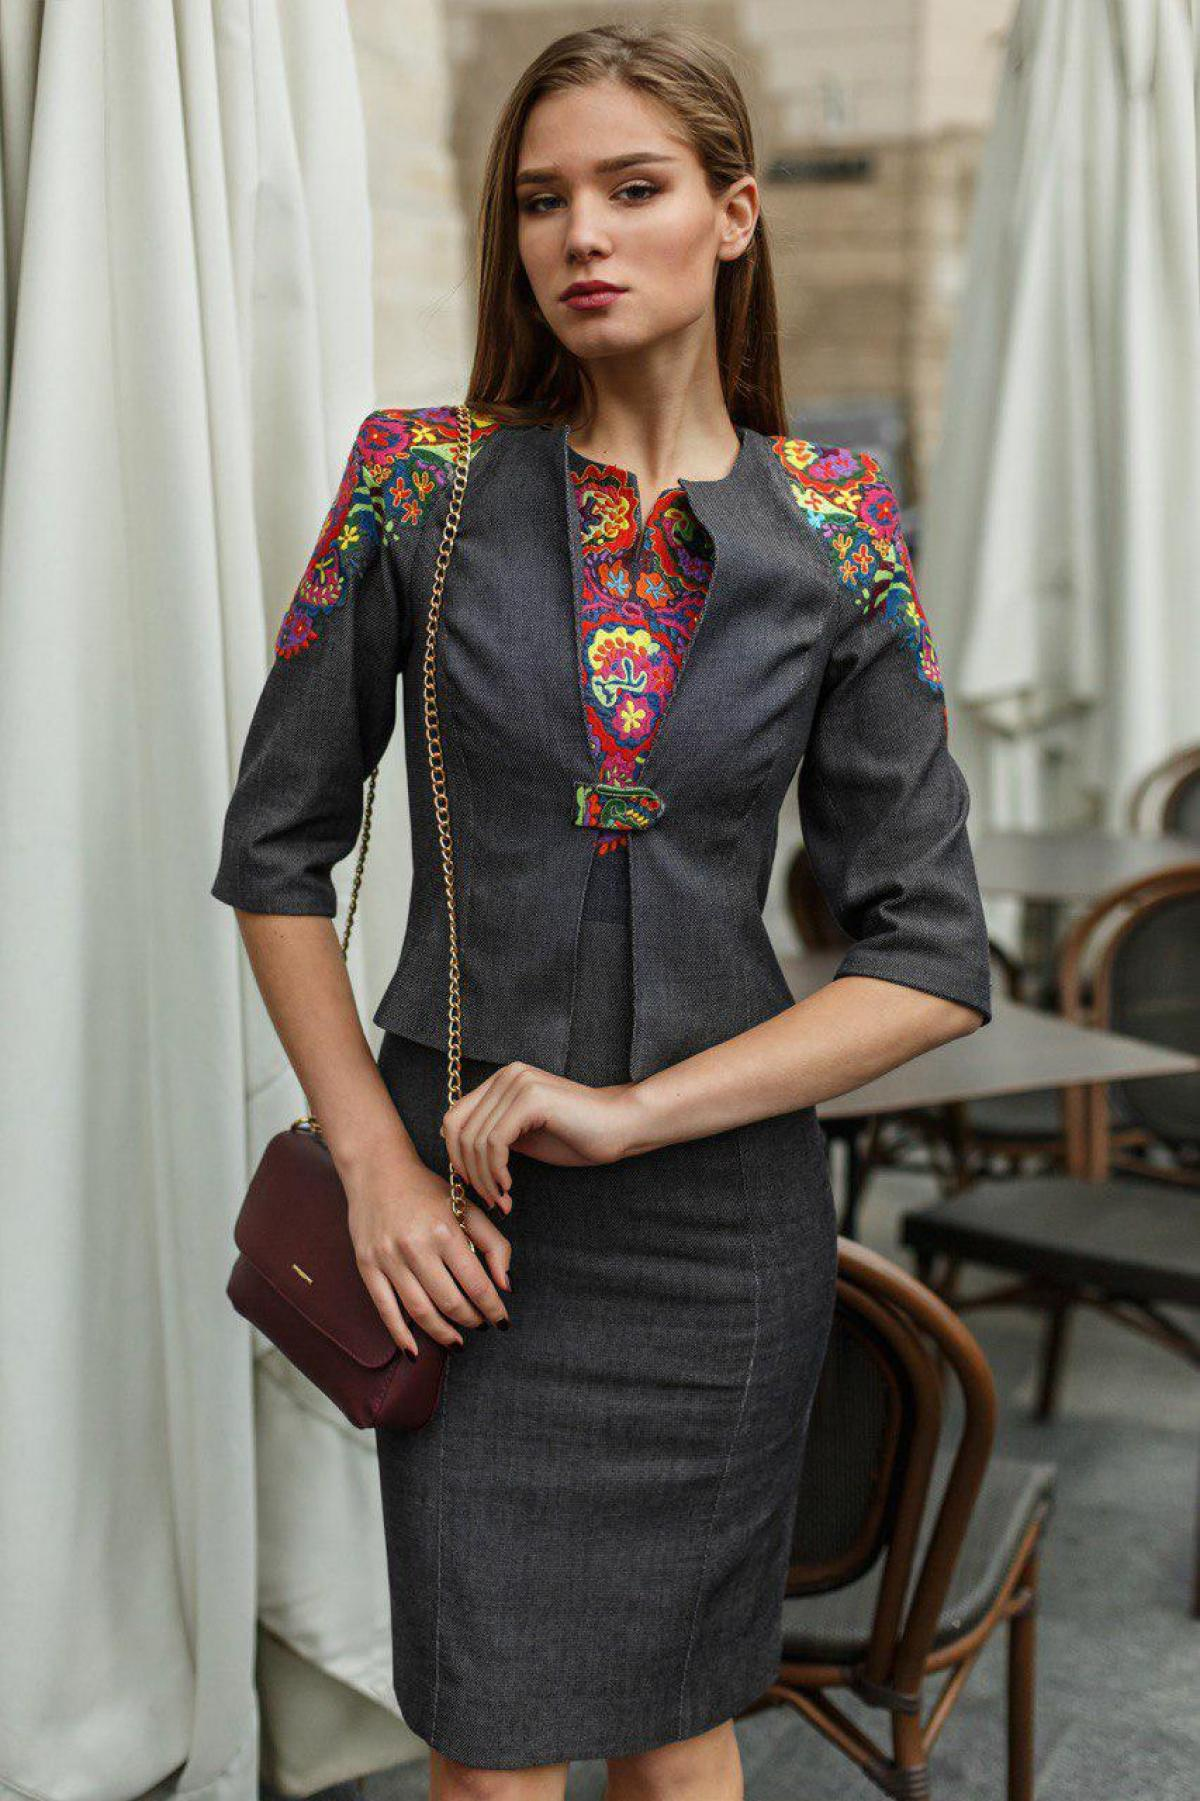 Embroidered suit dress+jacket for business woman, gray. Photo №1. | Narodnyi dim Ukraine